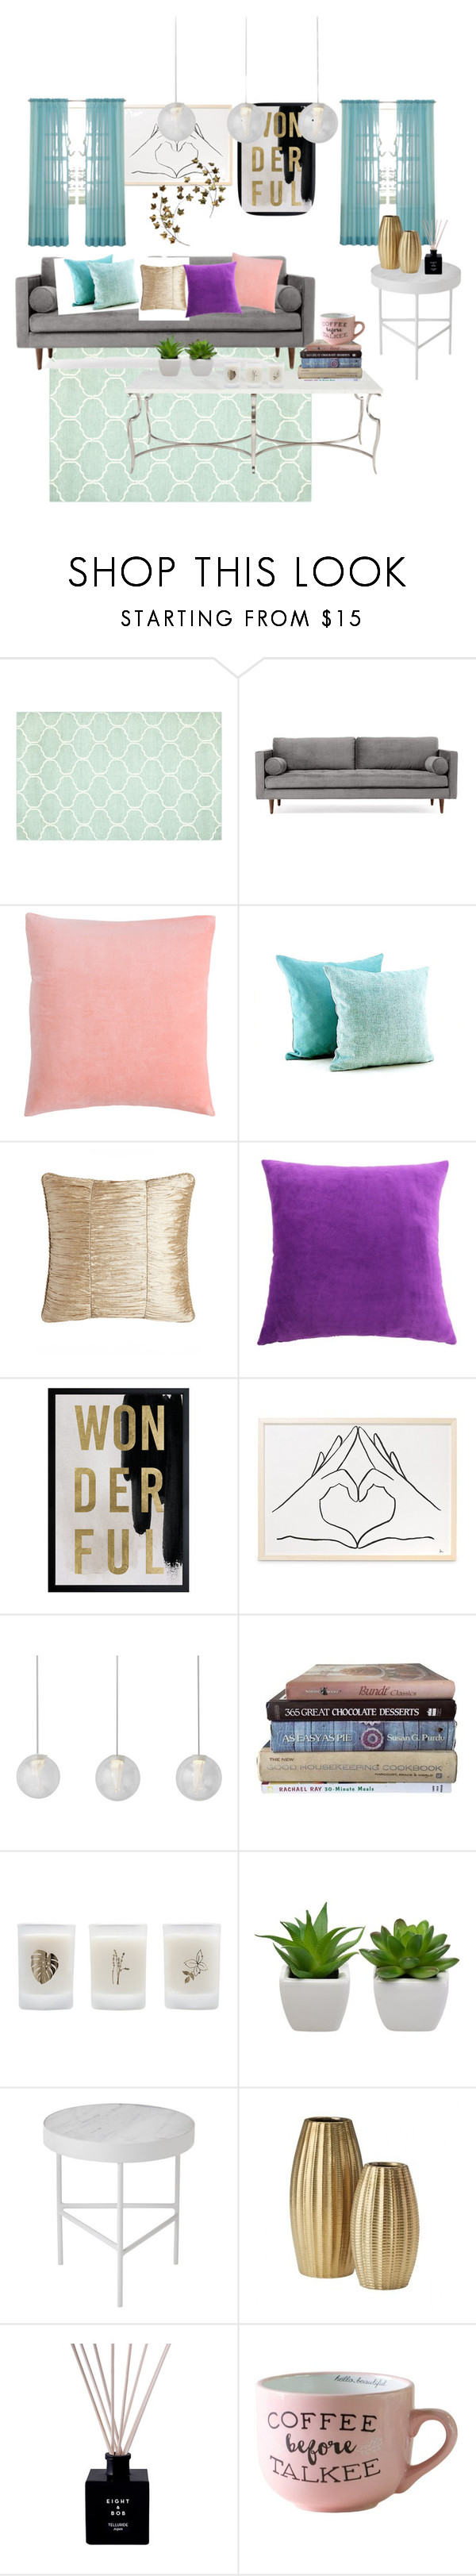 """""""colorful home"""" by kailigarcia ❤ liked on Polyvore featuring interior, interiors, interior design, home, home decor, interior decorating, Joybird, Austin Horn, Bernhardt and Oliver Gal Artist Co."""